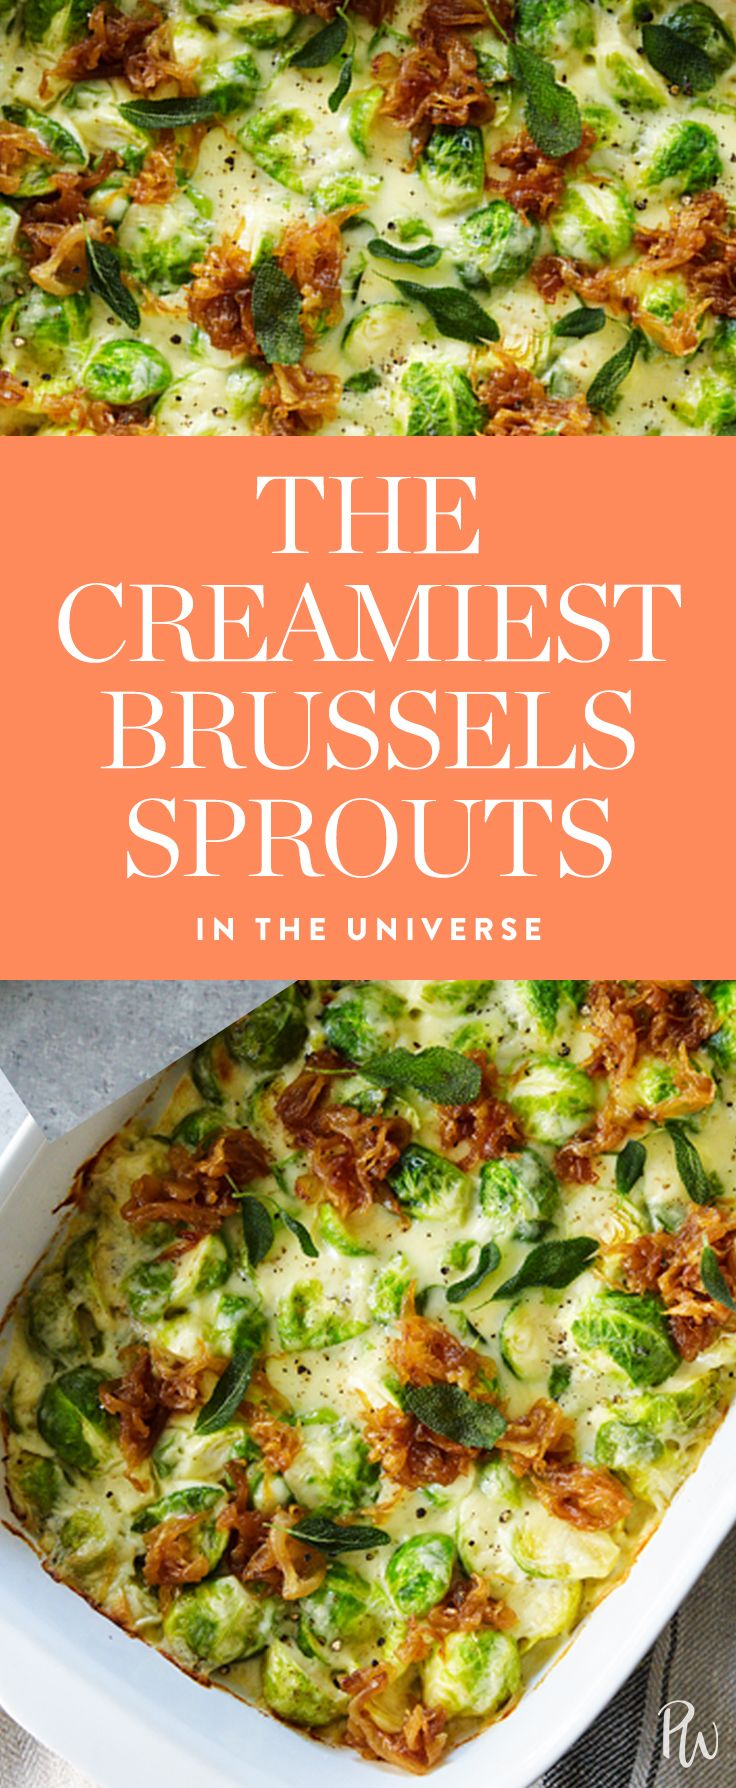 Meet the creamiestbrussels sprouts in the universe. Our favorite green meets comfort food in one of the best side dishesever created. Get the recipe here. #brusselssprouts #veggies #easyrecipes #vegetarian #sidedish #cheese #cheesy #brusselspoutrecipes